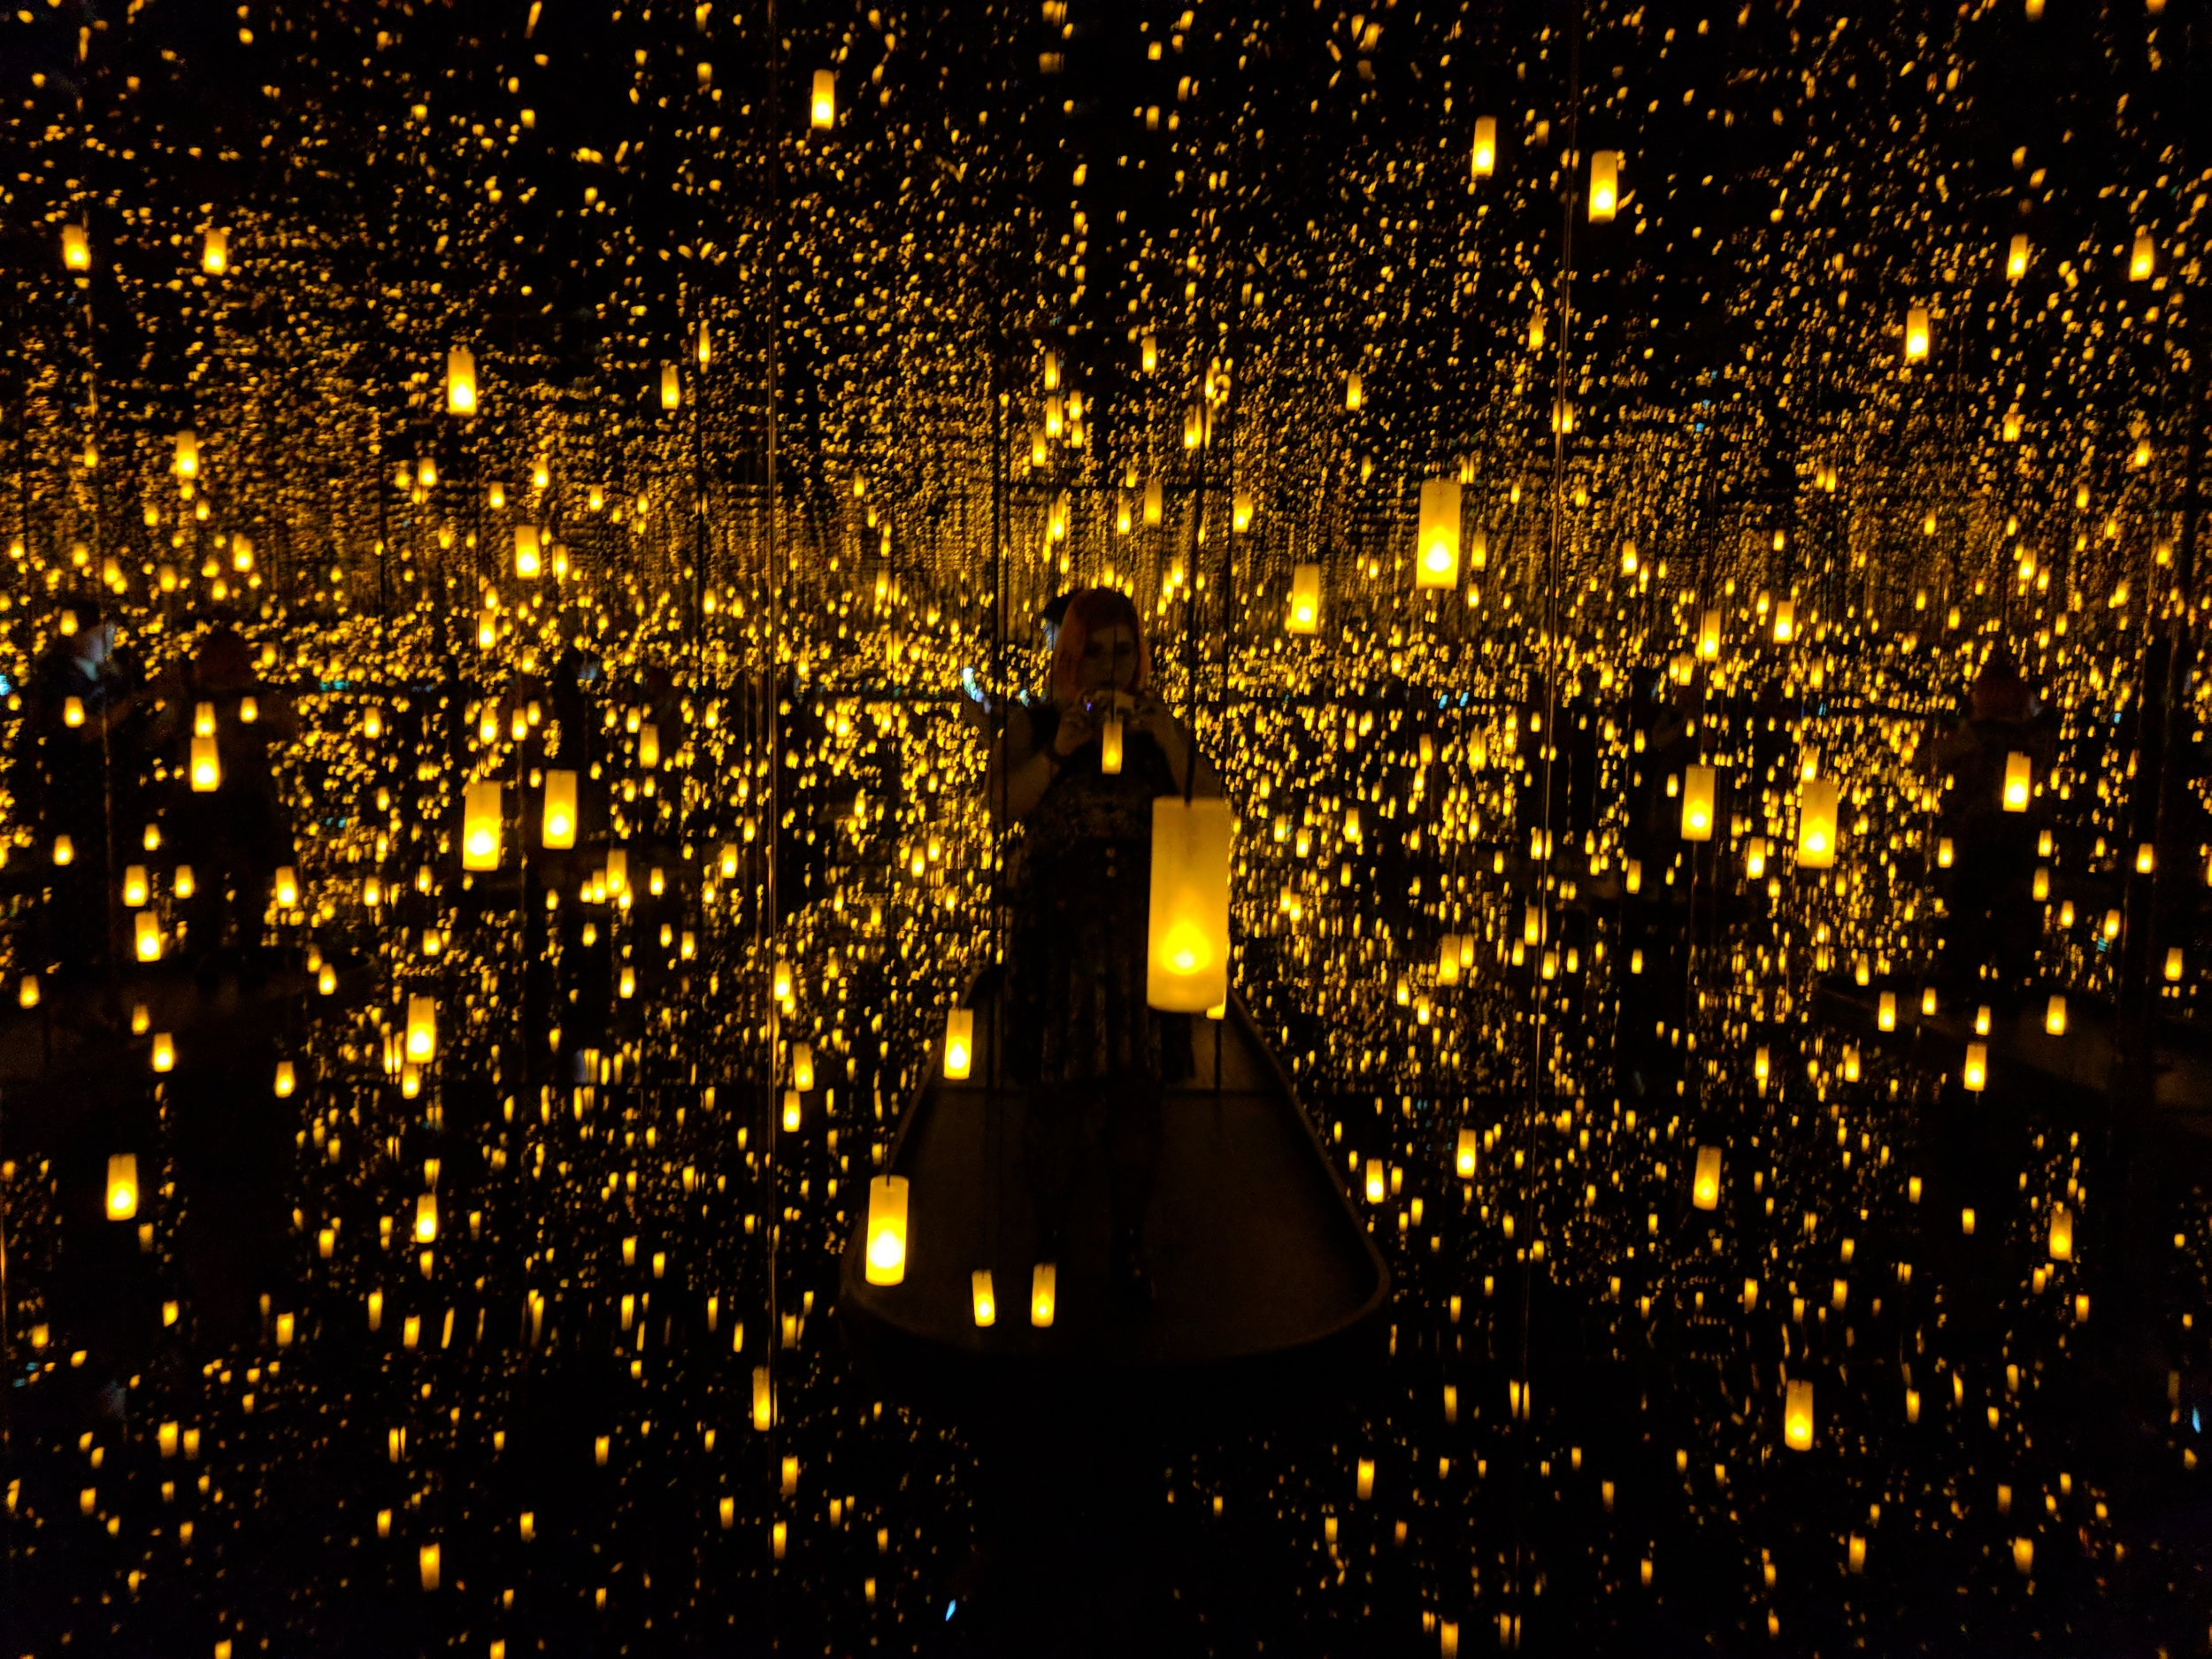 Yayoi Kusama - Aftermath of Obliteration of Eternity, 2009